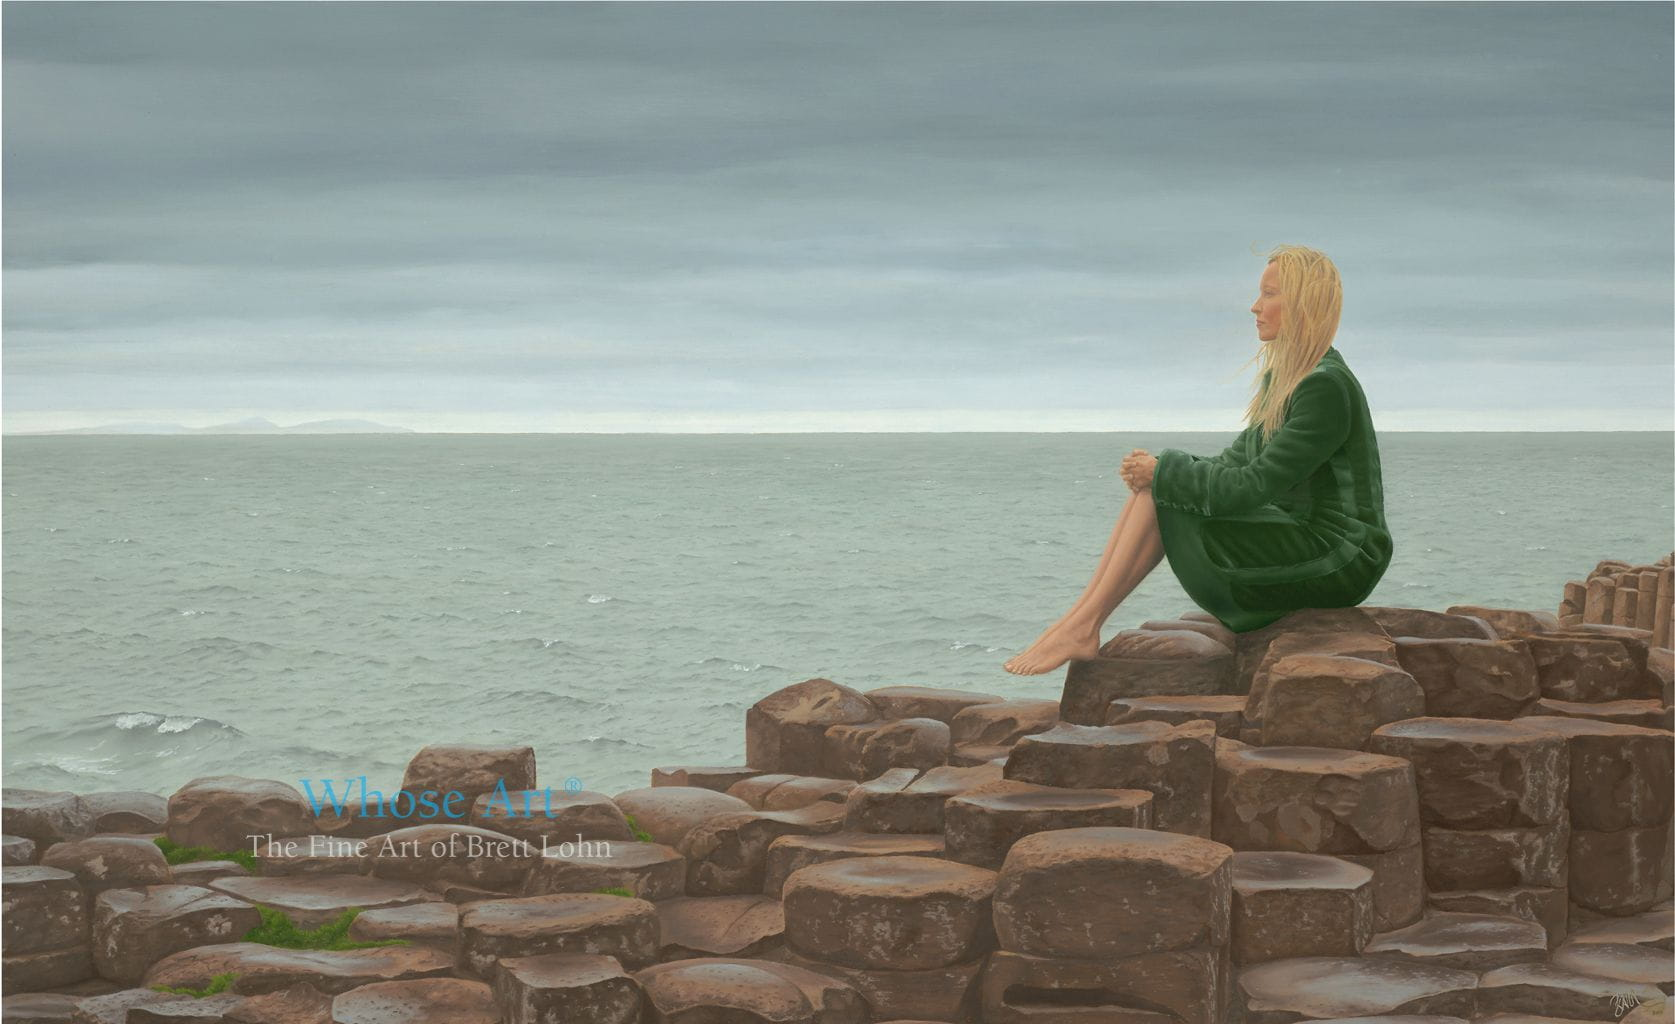 Giant's Causeway oil painting showing a young woman sitting on the rocks of the Giant's Causeway as a storm clears.